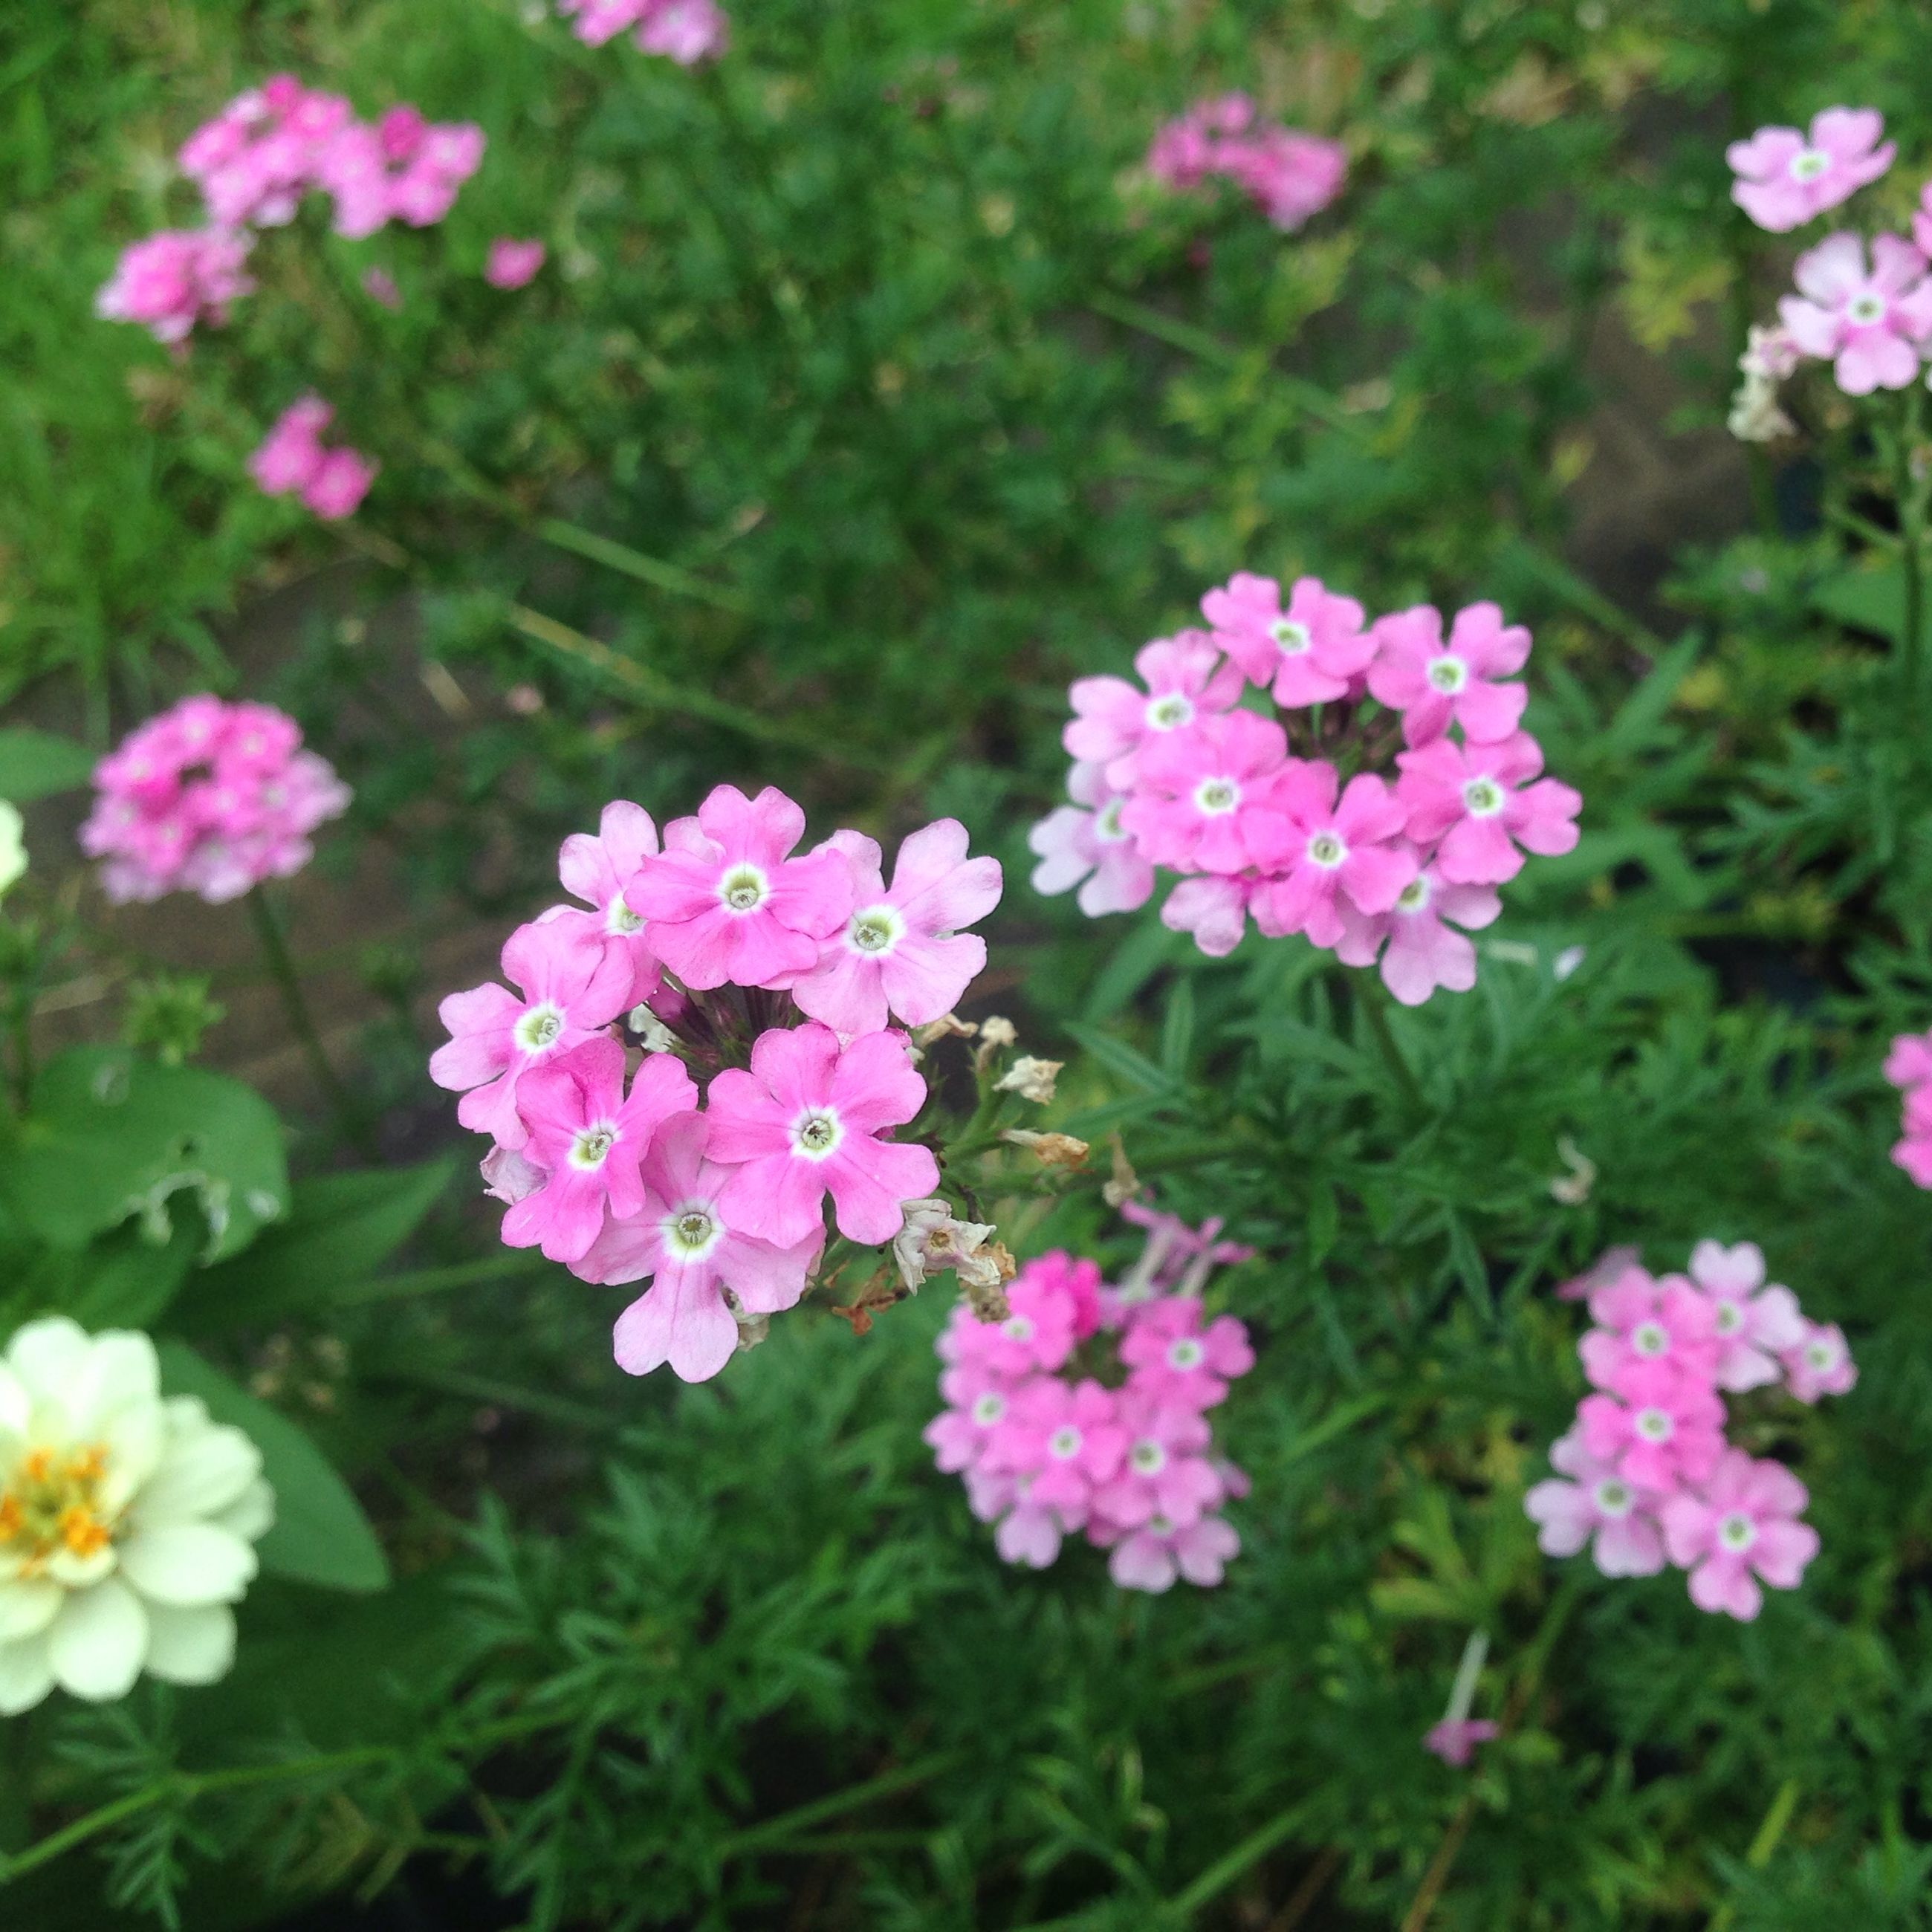 flower, freshness, fragility, growth, petal, pink color, beauty in nature, blooming, flower head, nature, plant, focus on foreground, in bloom, close-up, park - man made space, green color, field, high angle view, outdoors, day